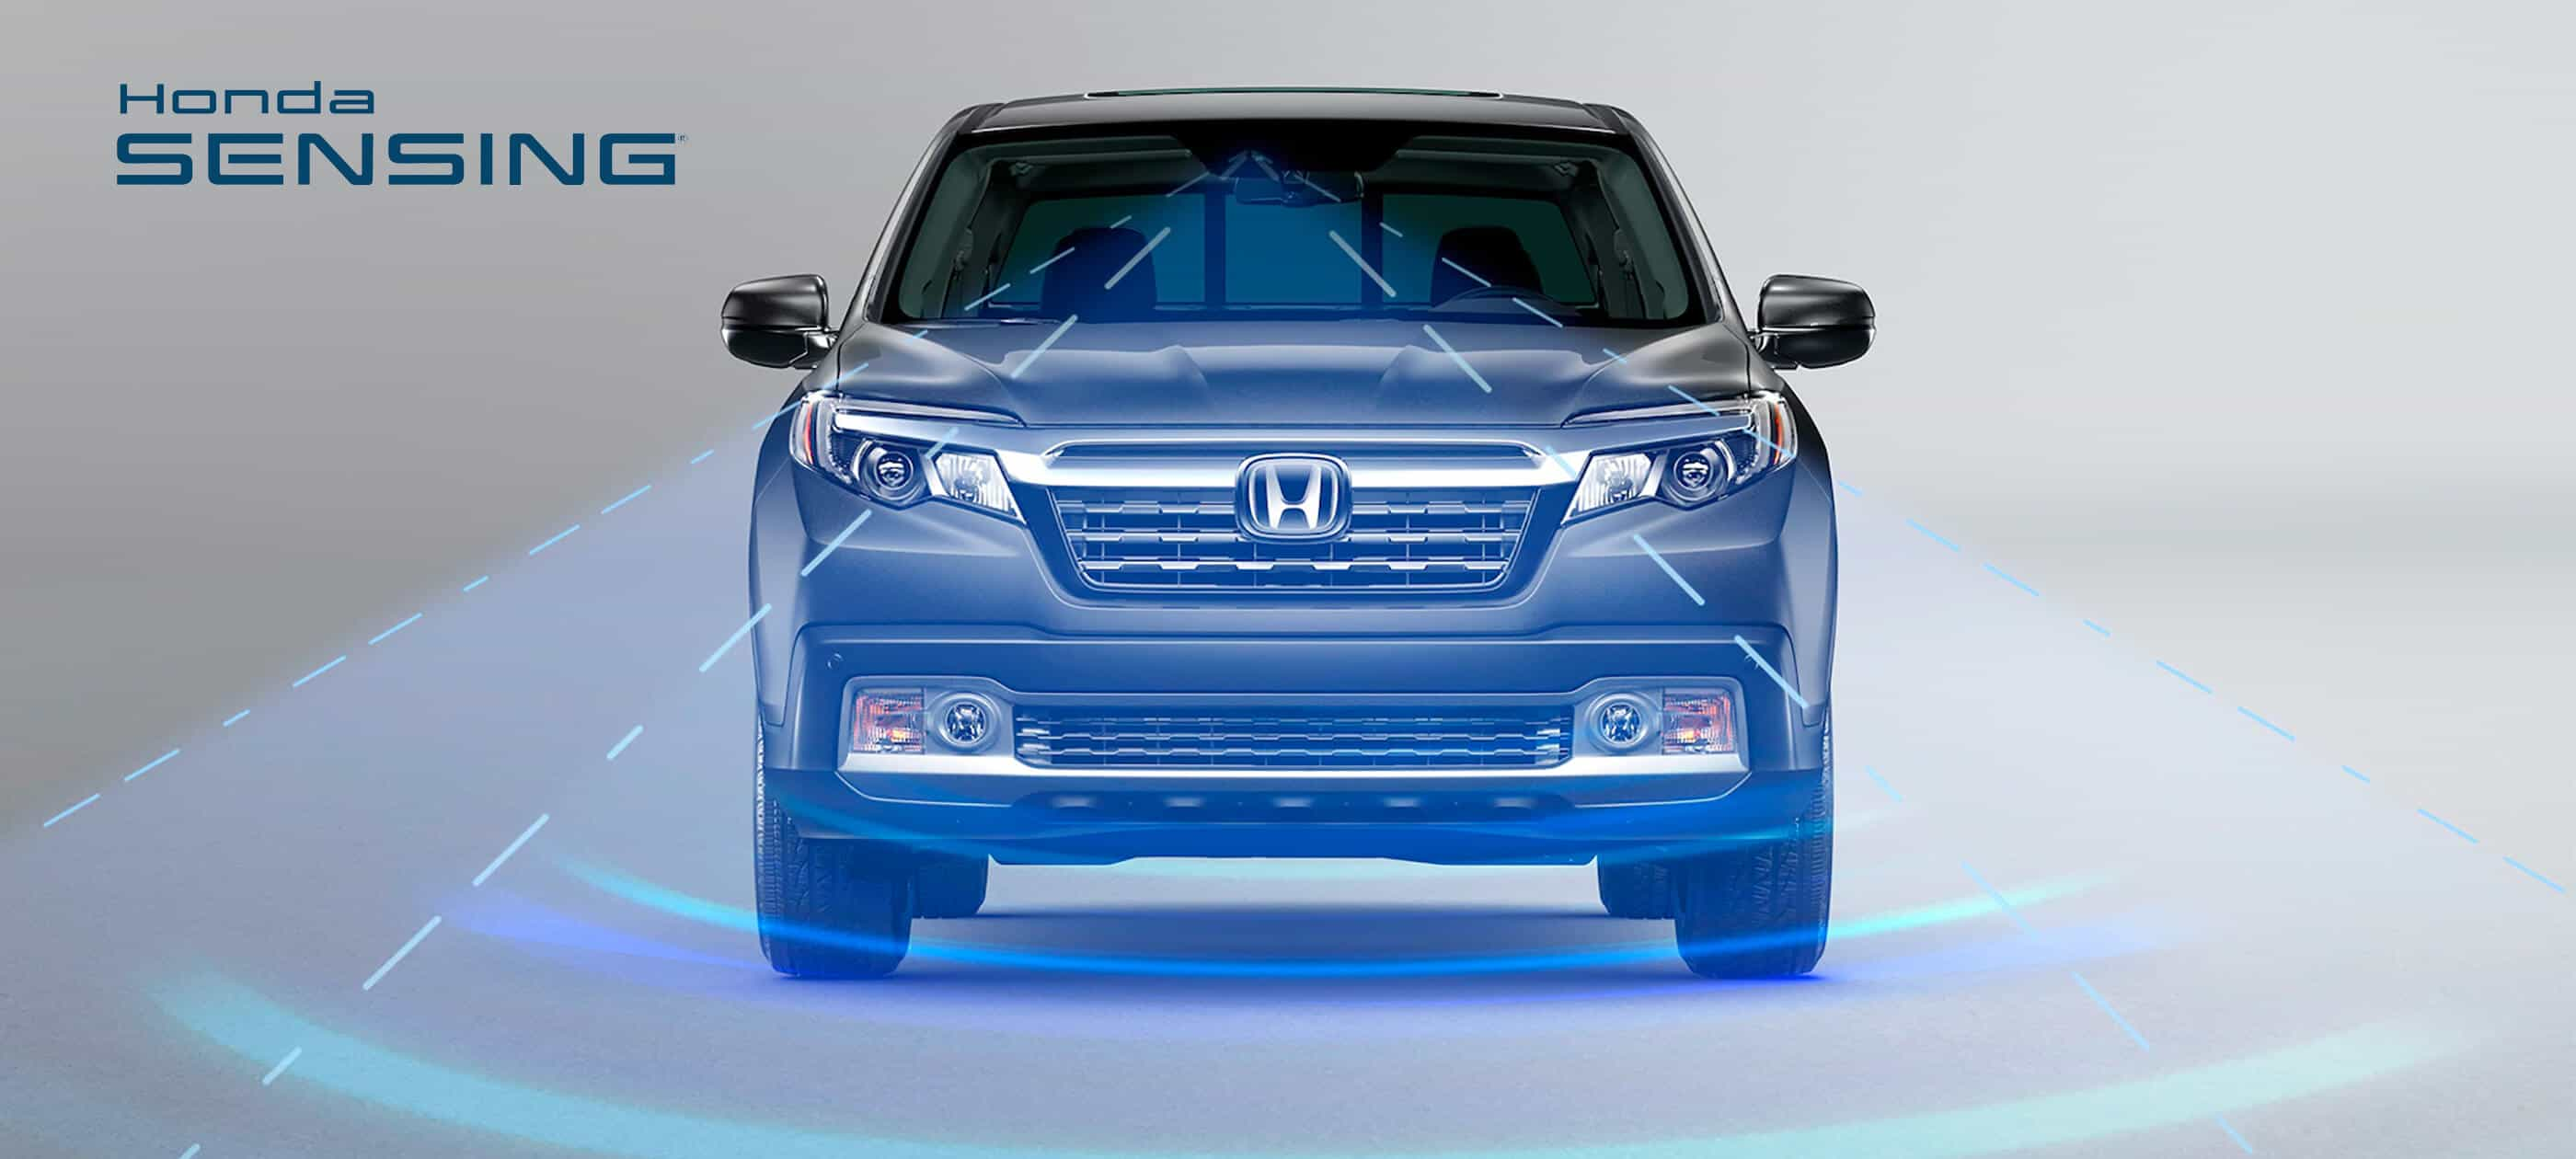 The Honda Sensing<sup>®</sup> Suite